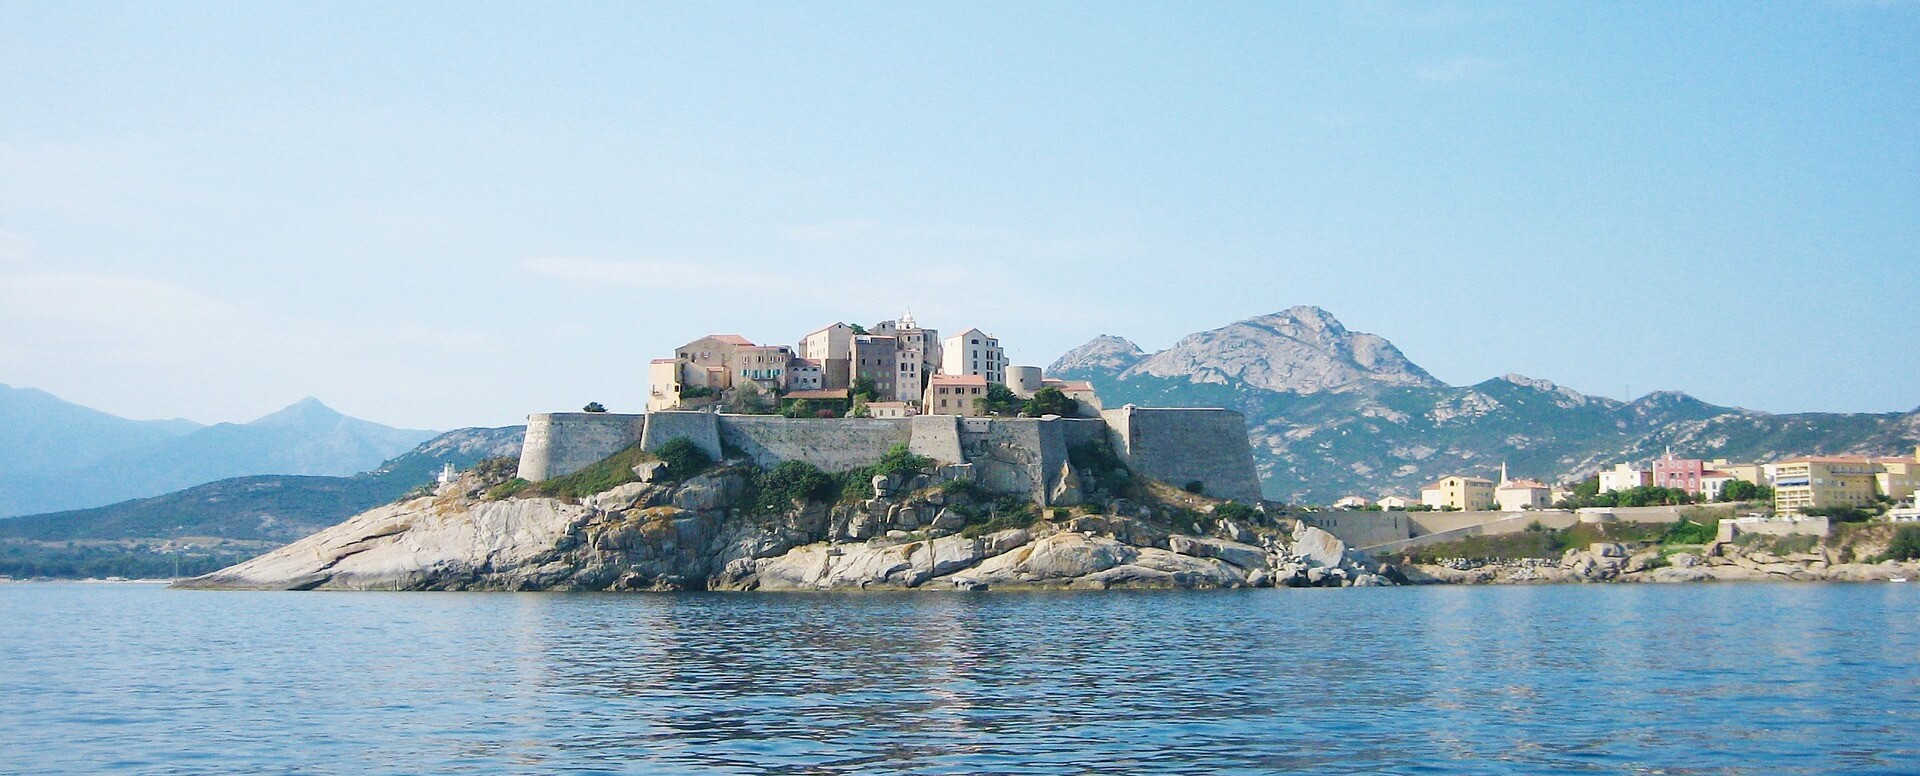 Places to visit in Corsica - Corsica